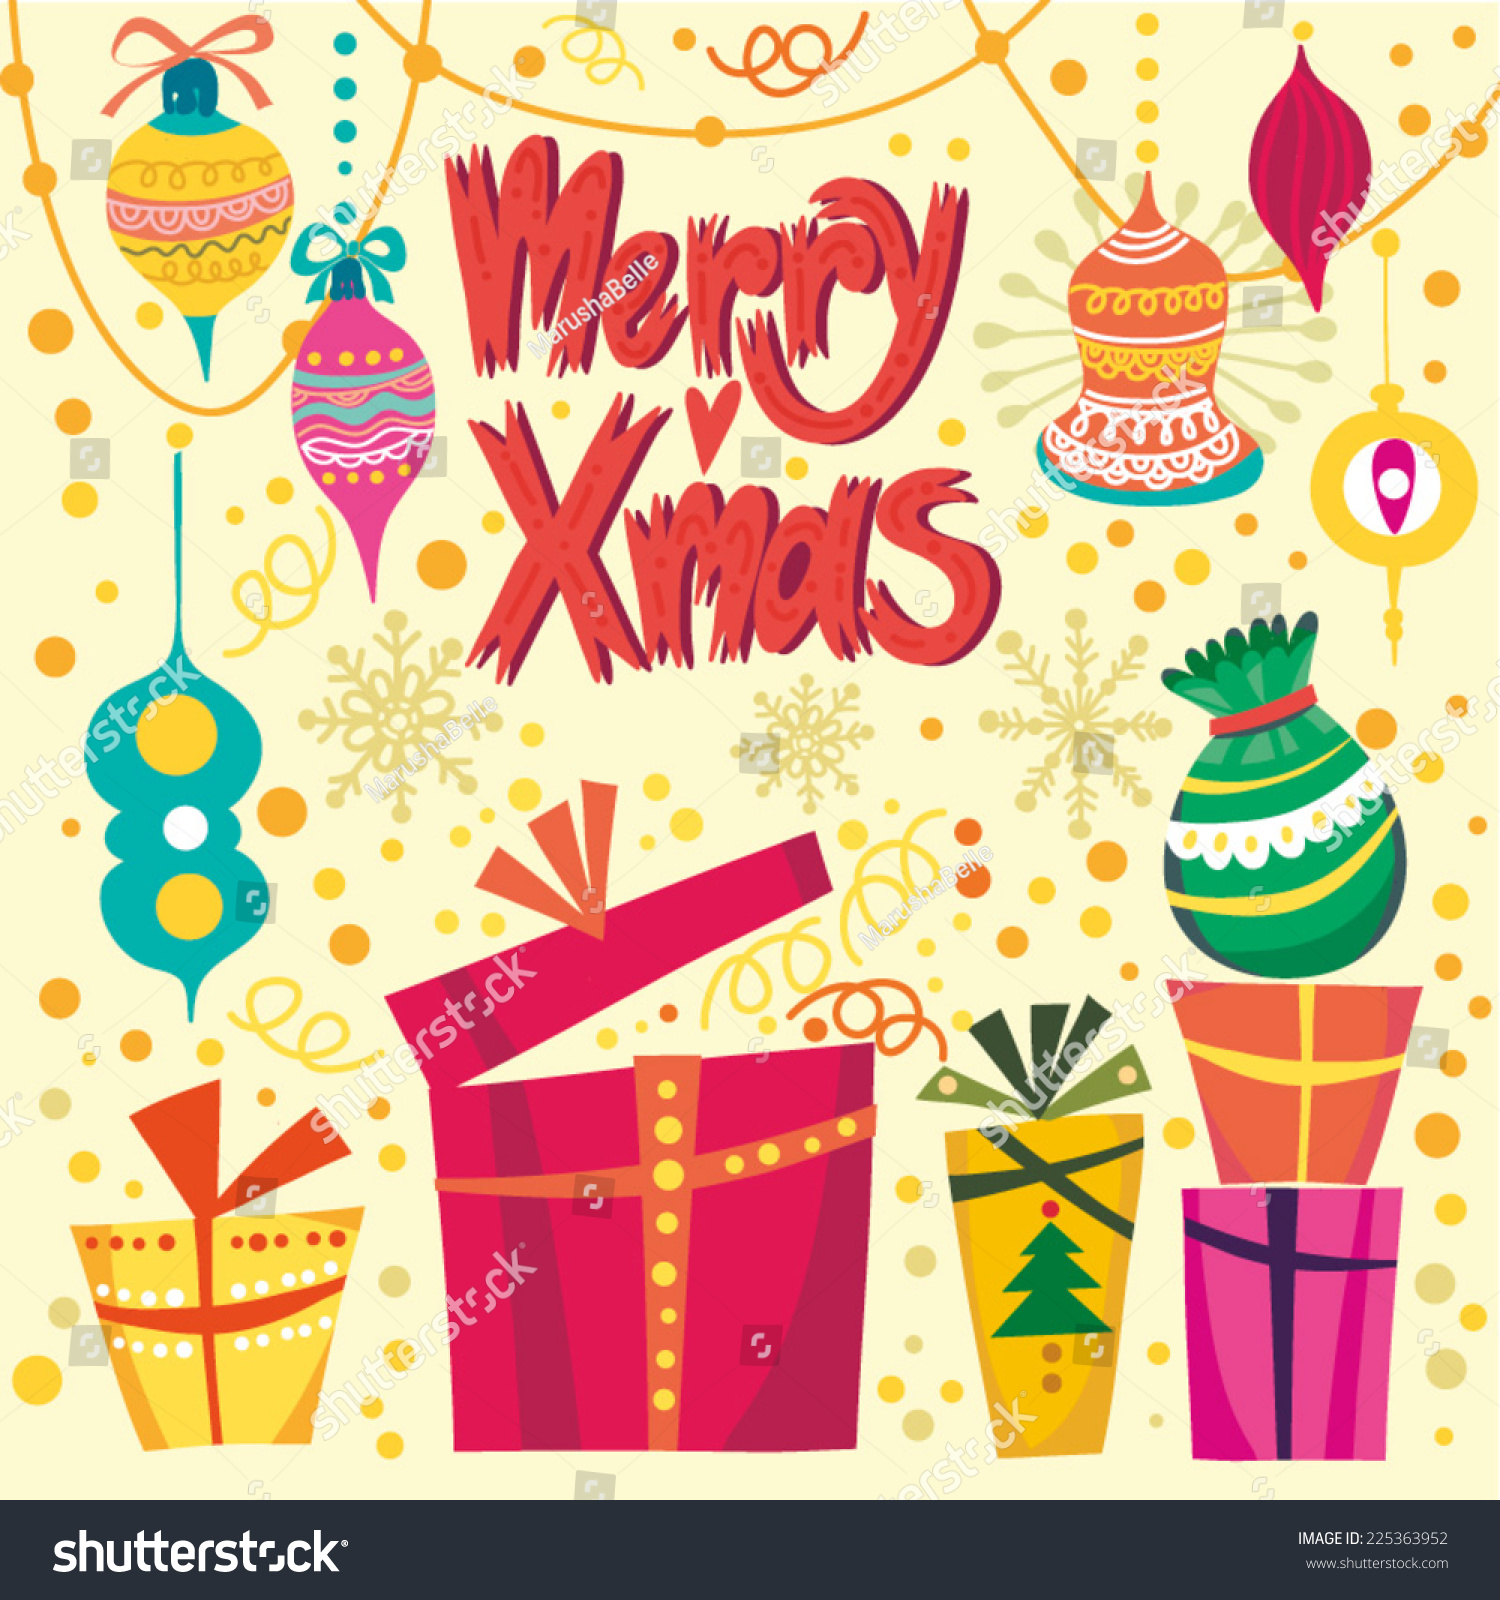 Vector bunting flags lovely celebration card with colorful paper - Vintage Christmas Card Of Gift Boxes